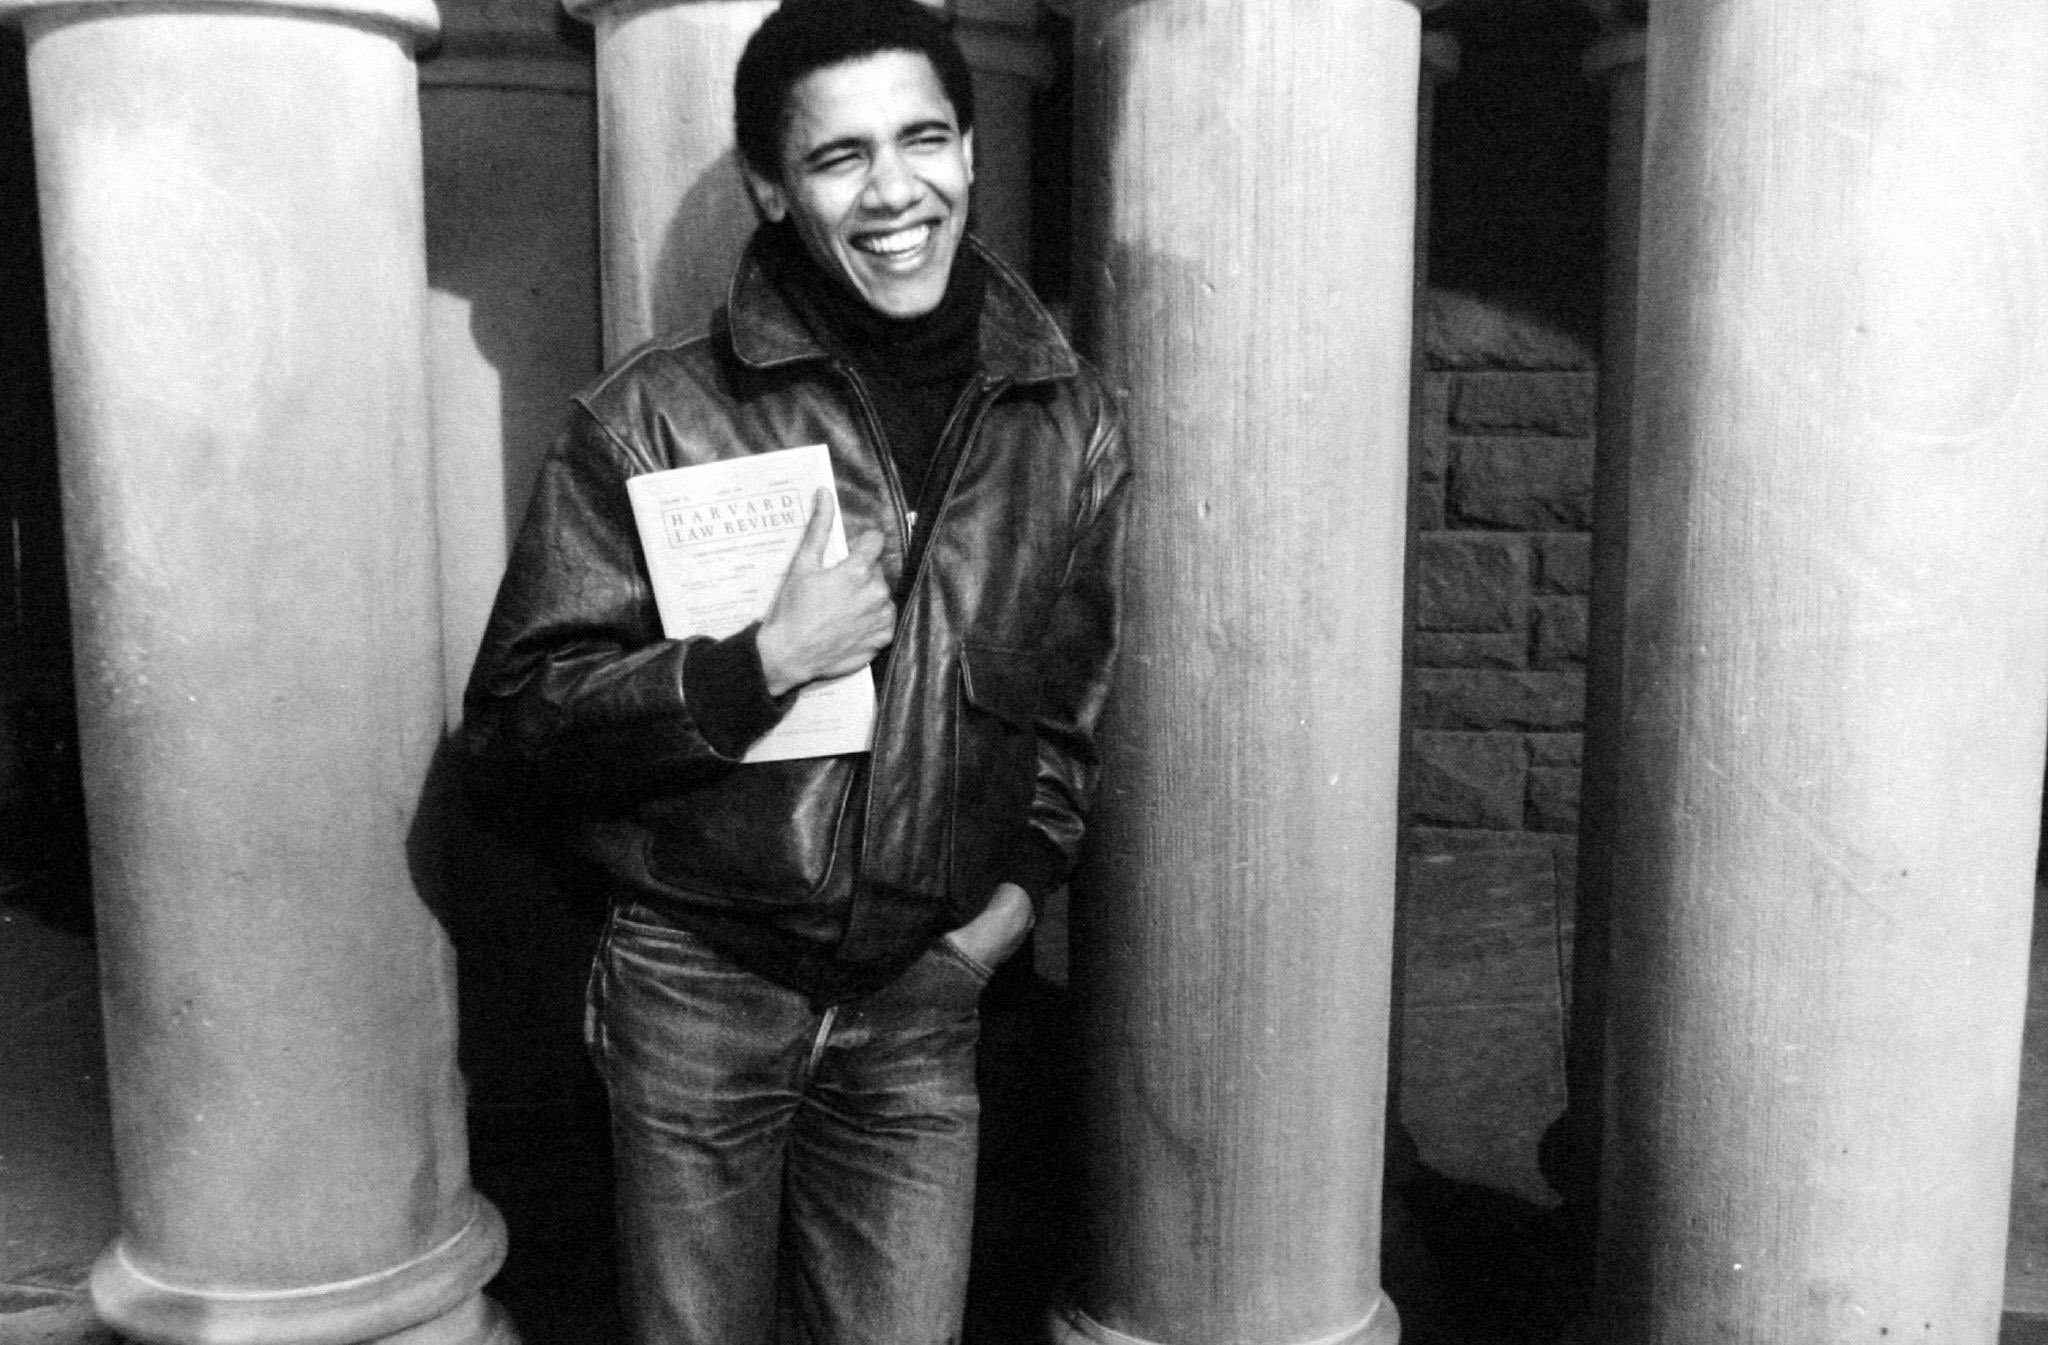 Barack Obama as student at Harvard university, c. 1992 | Photo: GettyImages